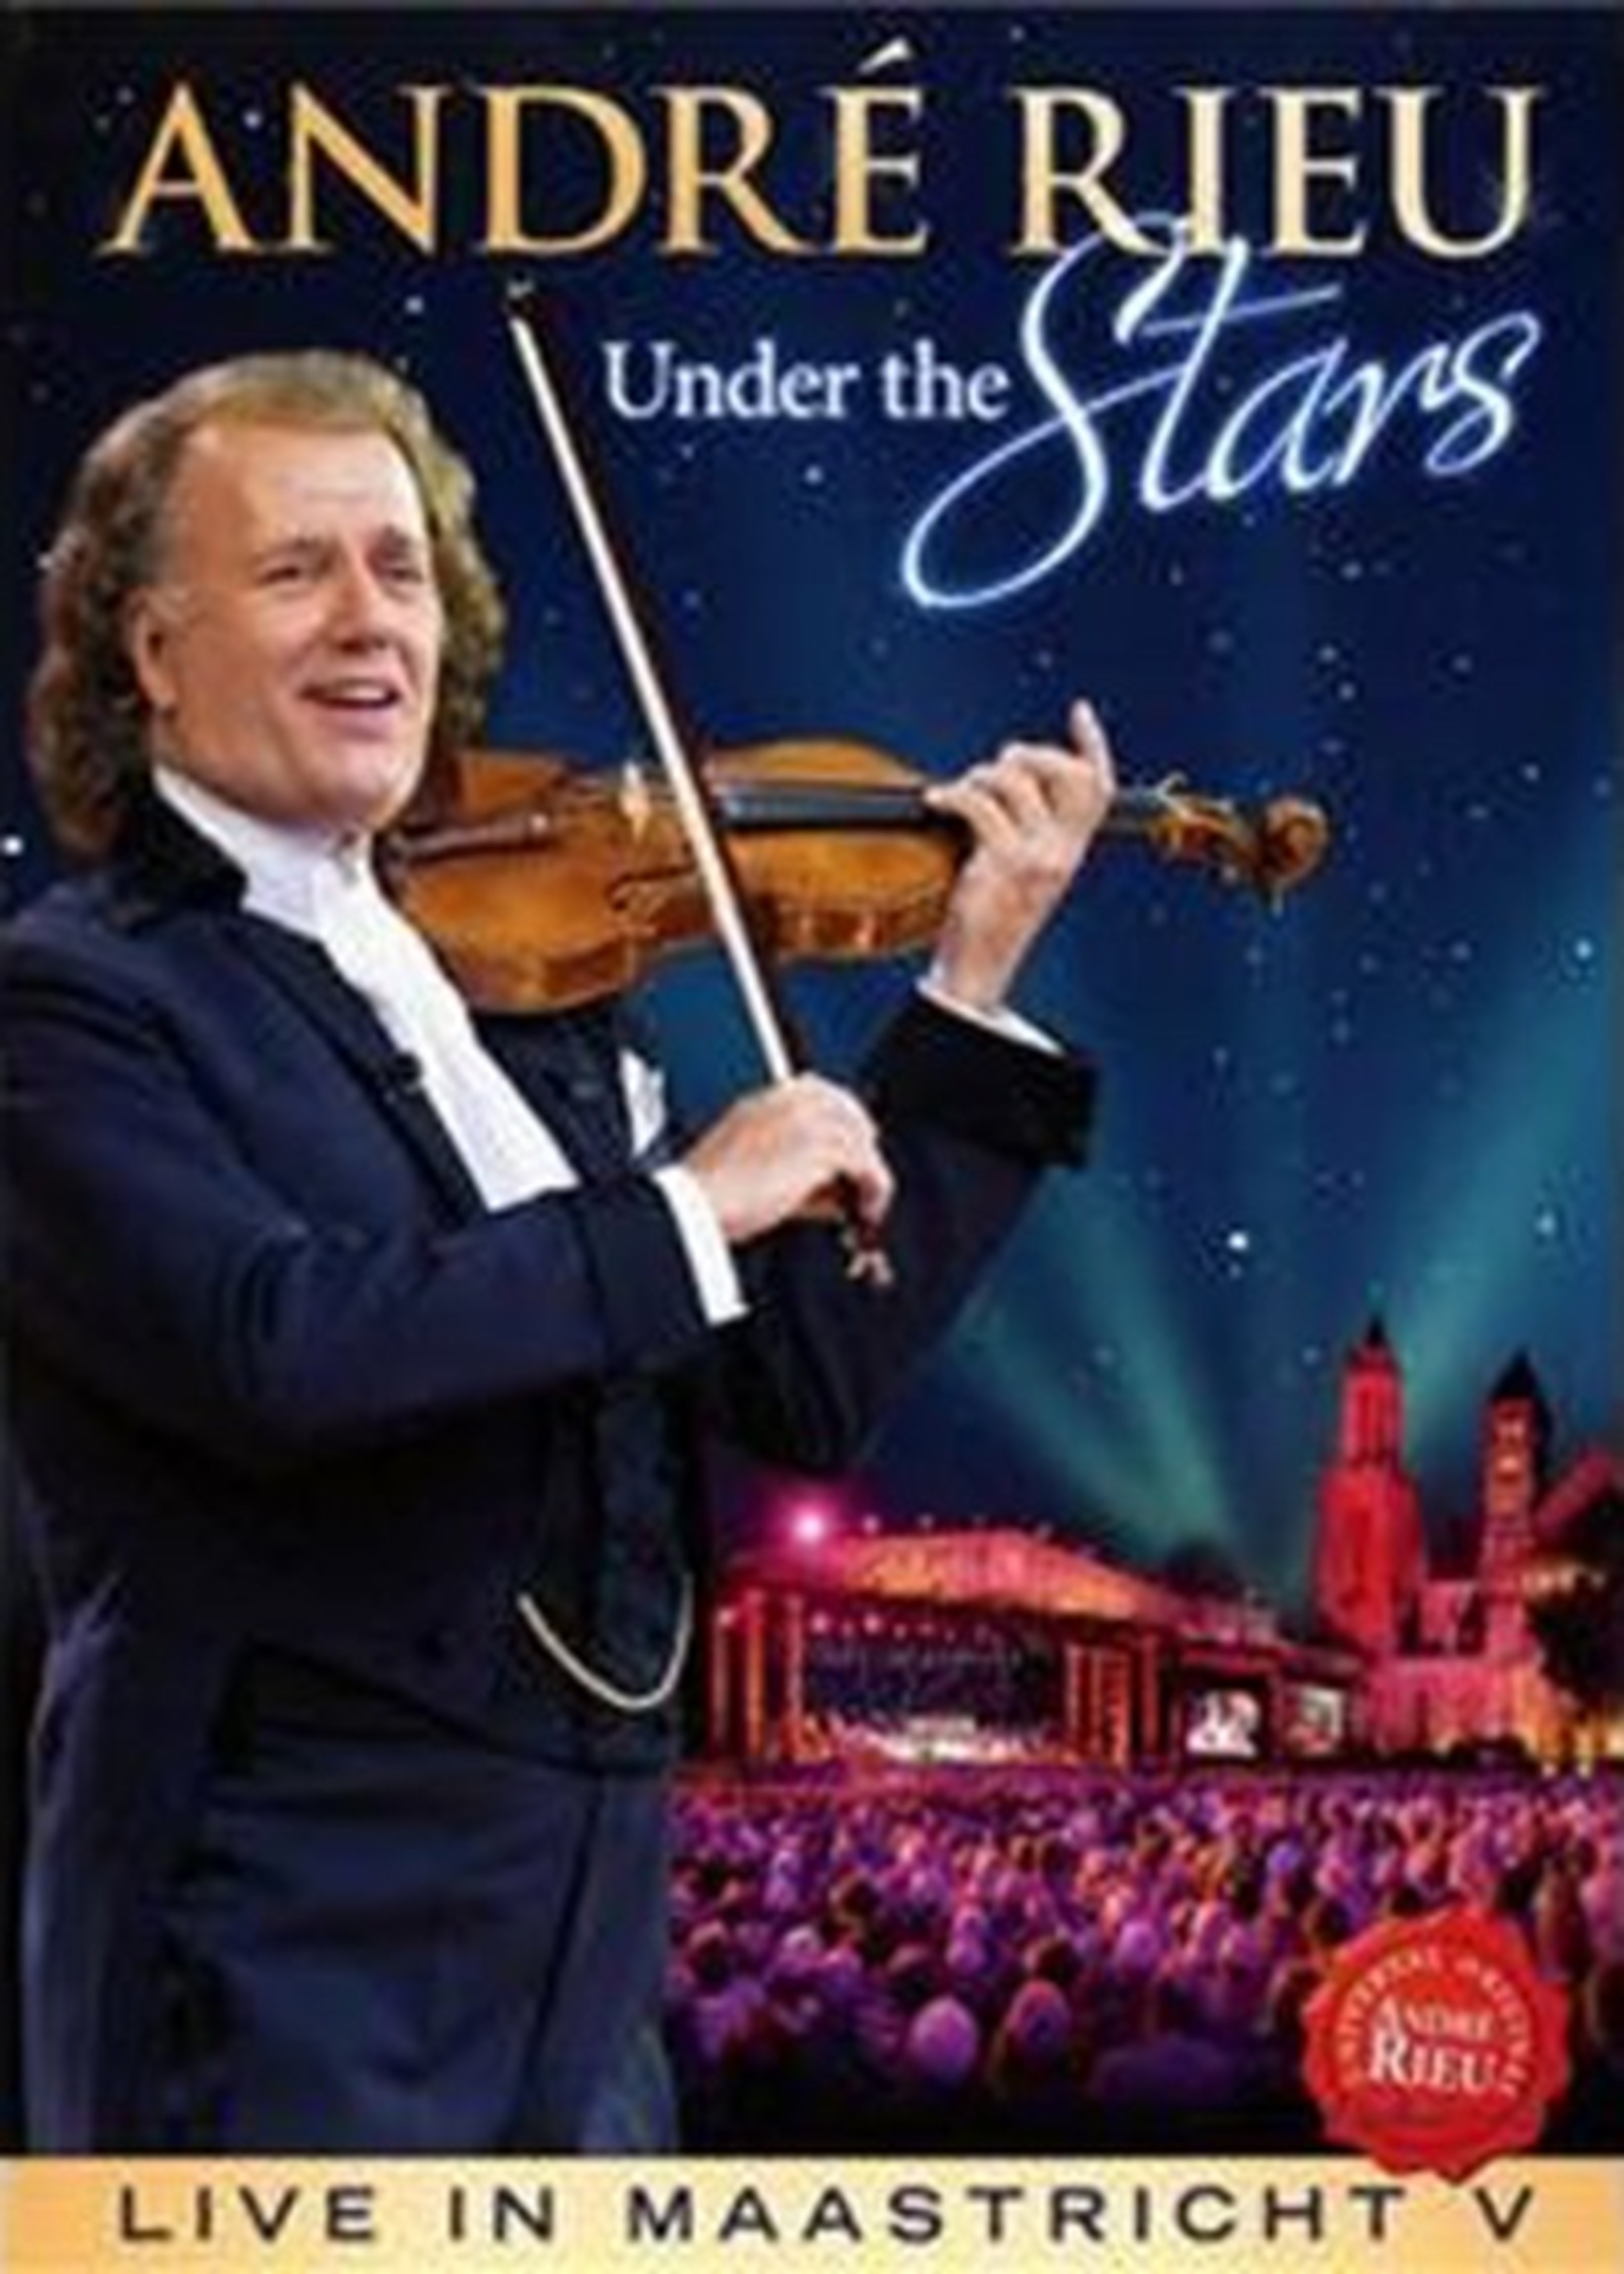 Andre Rieu: Under the Stars - Live in Maastricht - 1